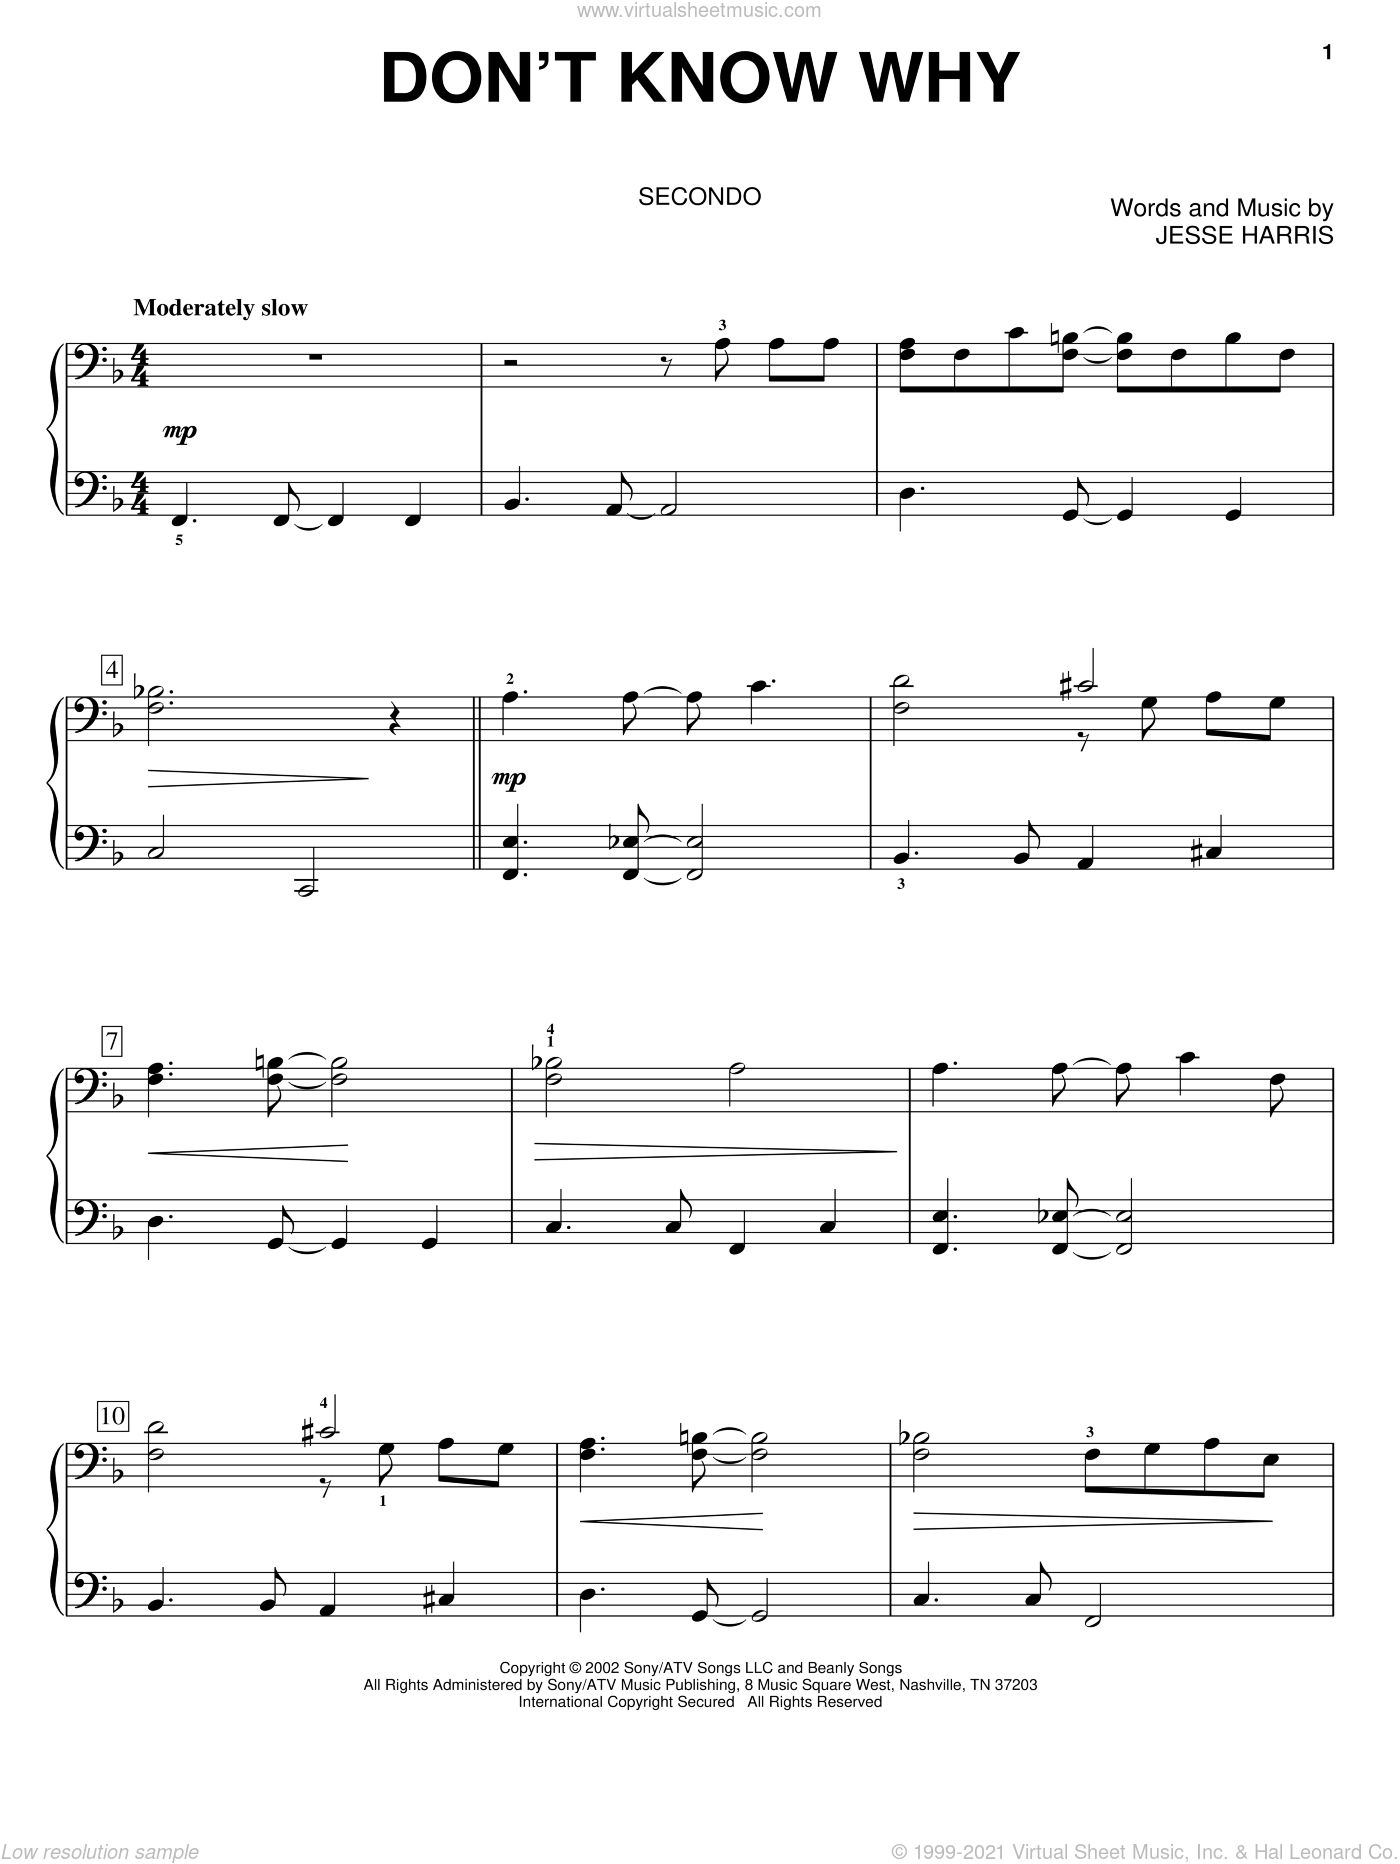 Don't Know Why sheet music for piano four hands (duets) by Jesse Harris